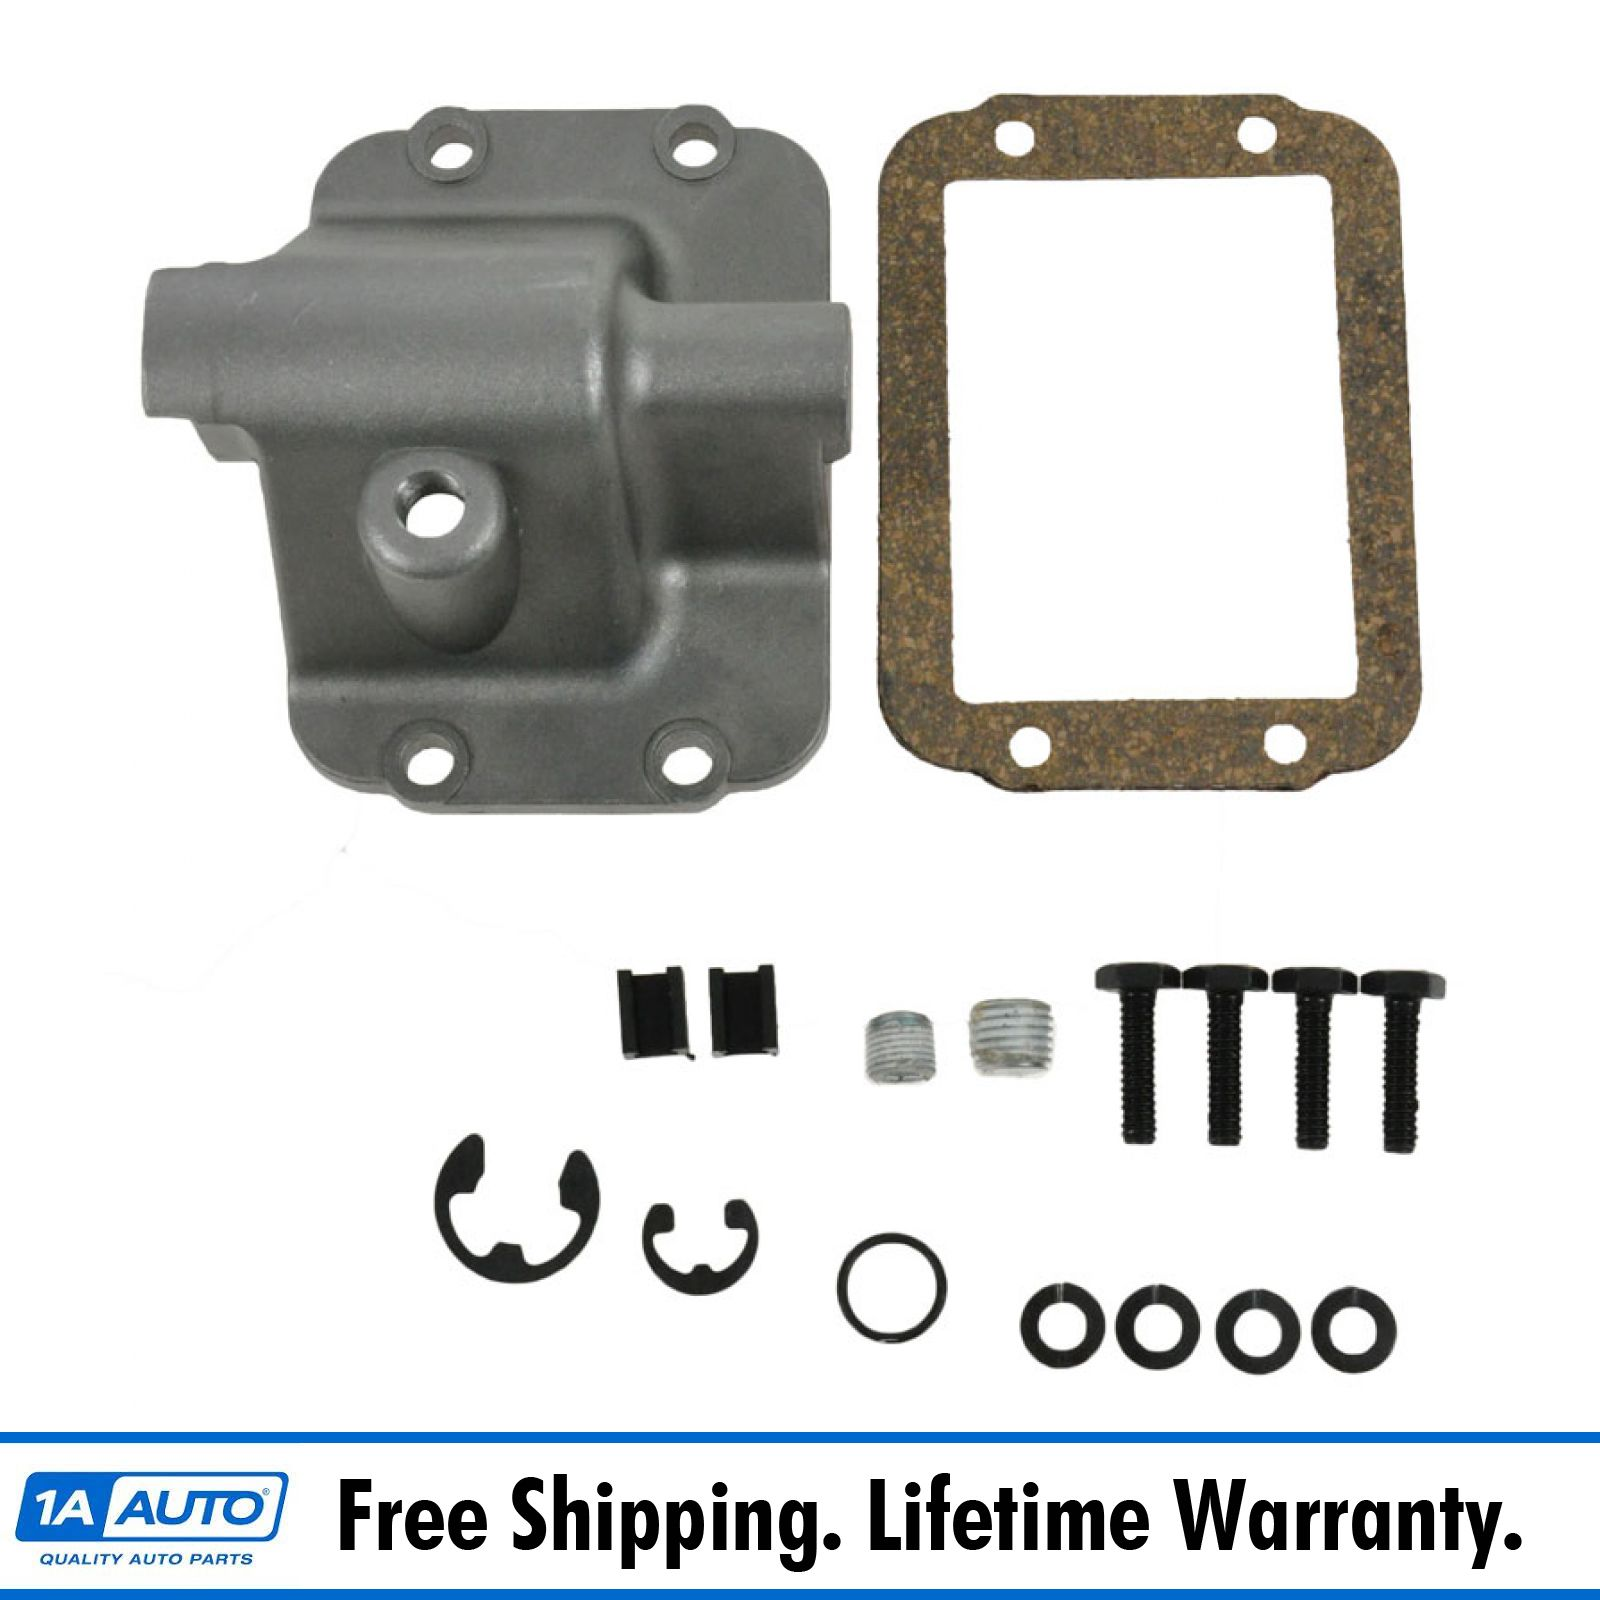 Details about Dorman Dana 44 Front Axle Shift Actuator Housing for W150  Ramcharger Ram Jeep